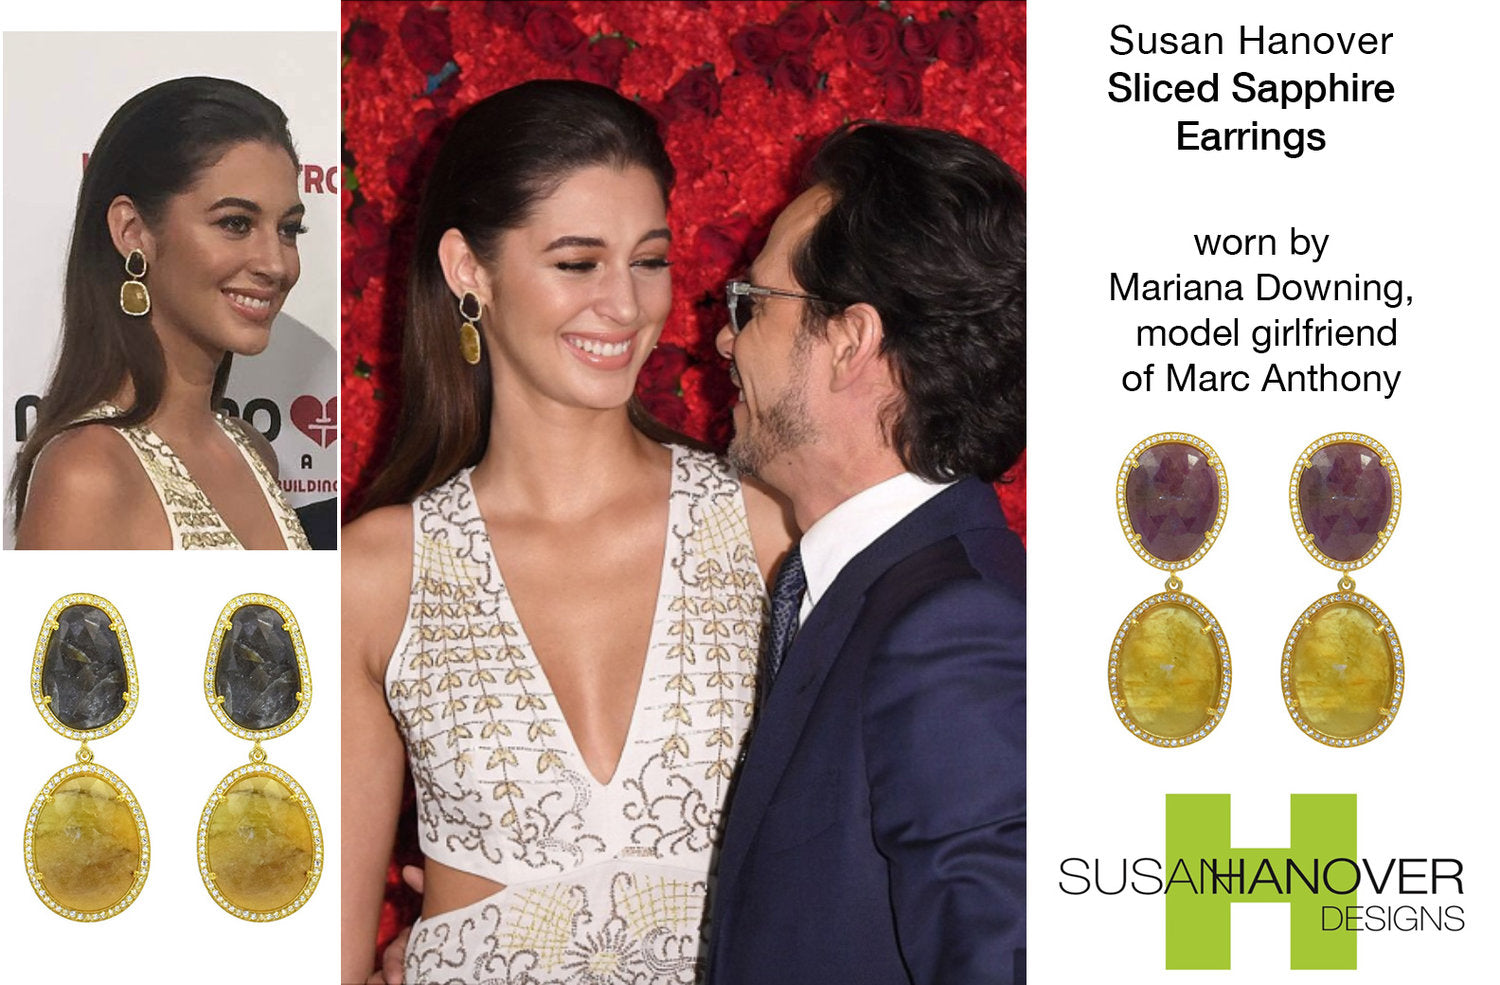 Model  Mariana Downing , Girlfriend Of Marc Anthony, Wears Our Sliced Sapphire Earrings.   SHOP Sliced Sapphires